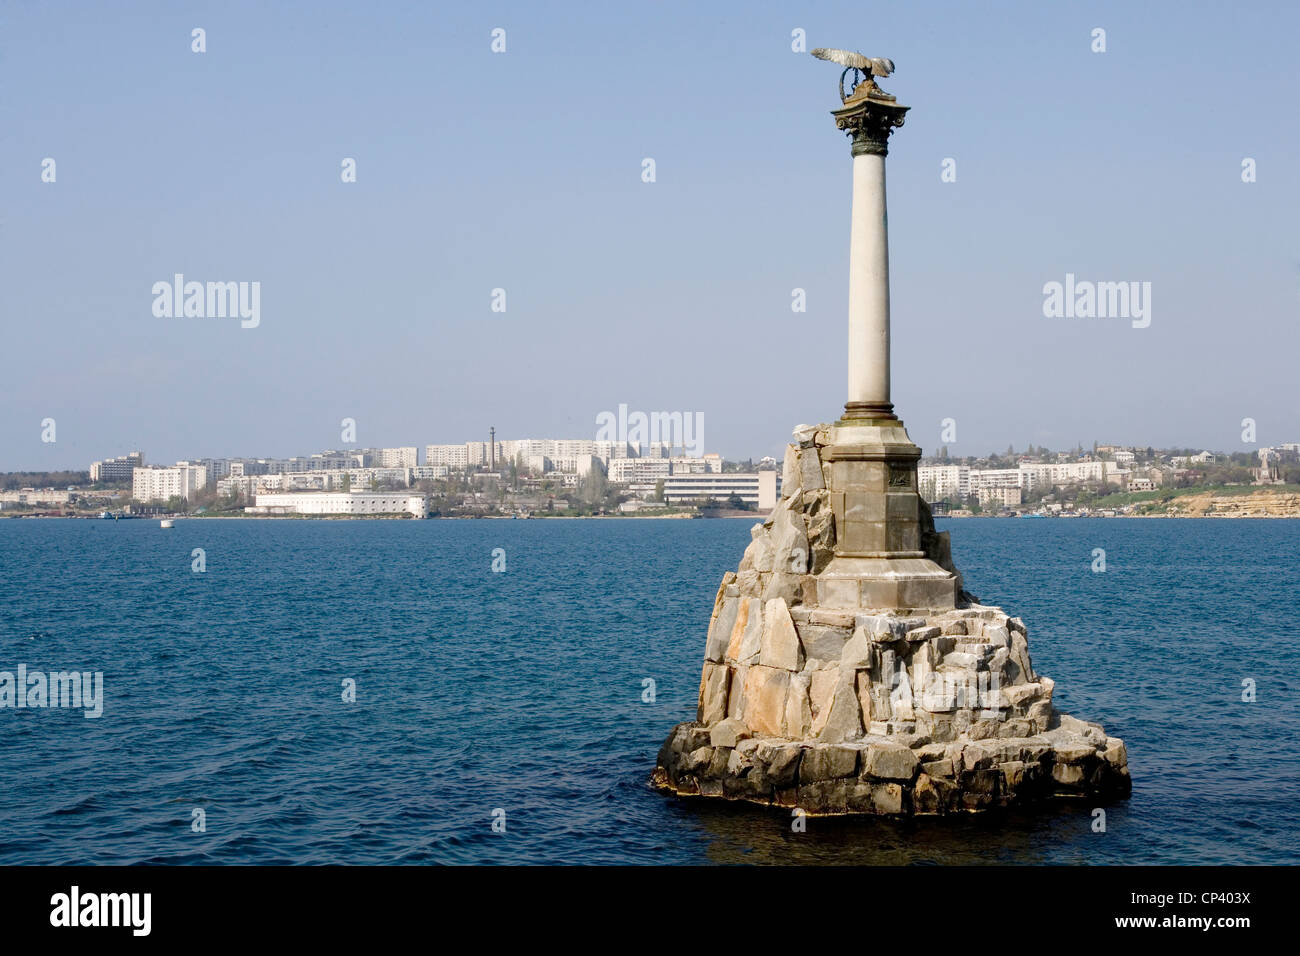 Ukraine - Crimea - Sevastopol. Memorials to the sunken ships in the siege of the city (1854-55) during the Crimean - Stock Image